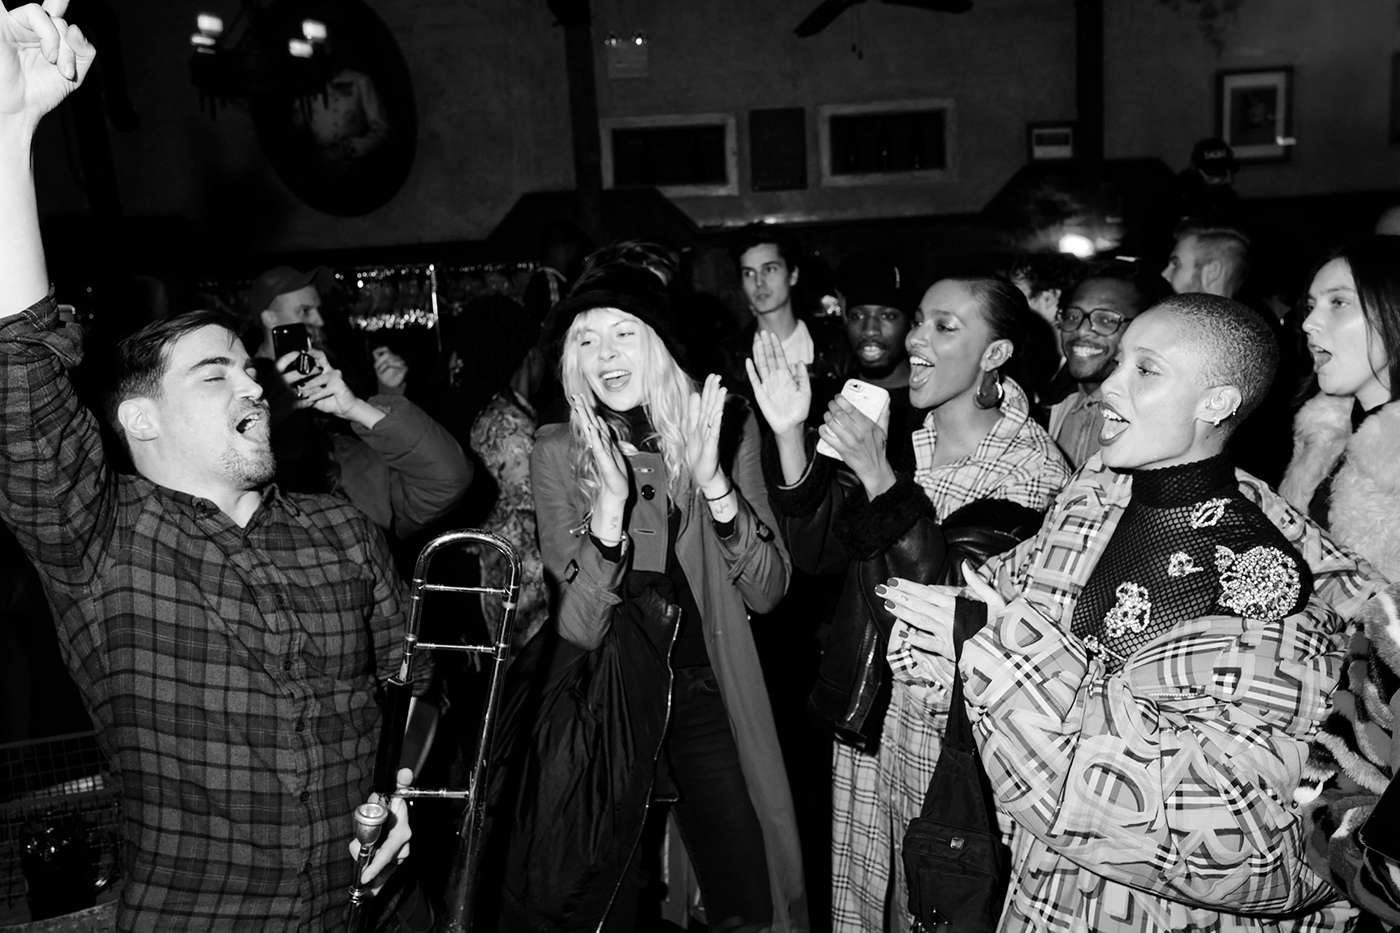 High & Mighty Brass Band, Octavia Calthorpe, Alewya Demmisse, Adwoa Aboah